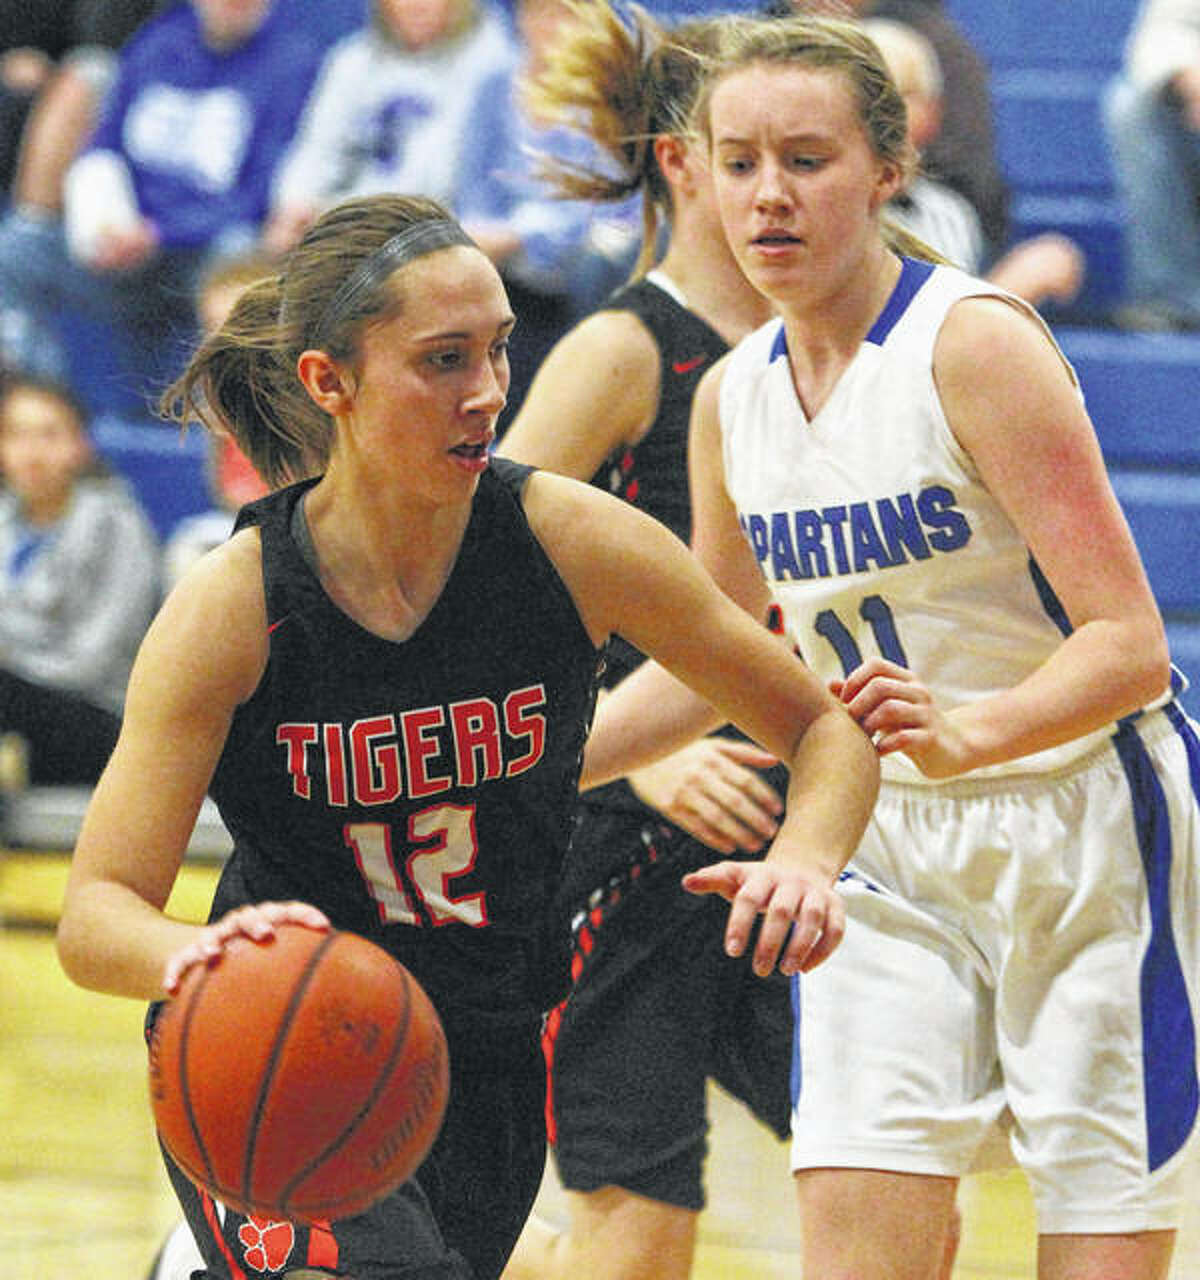 Greenfield's Kassidy Walters (left), shown in a game last season against North Greene in White Hall, scored 34 points Thursday in a Senior Night victory over Calhoun in Greenfield.